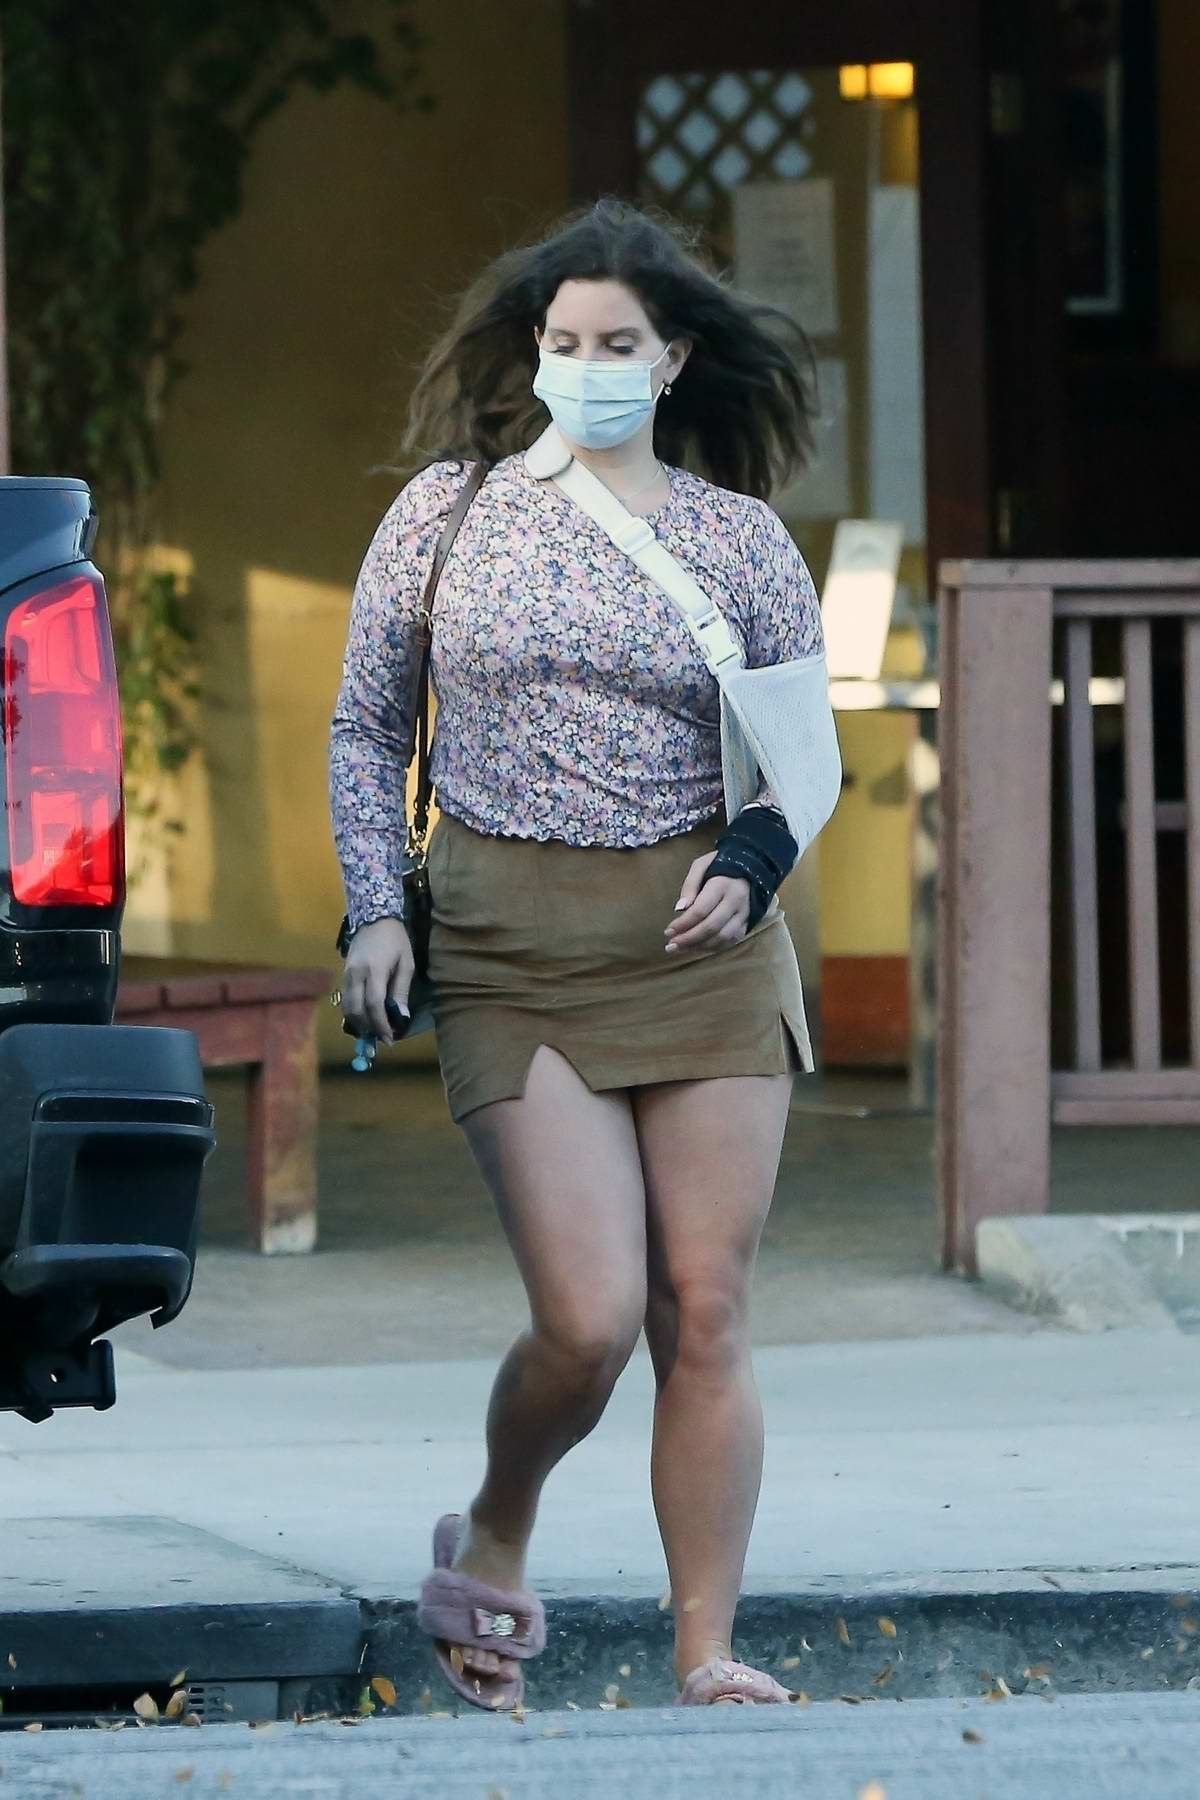 Lana Del Rey dons a mini skirt and a floral long sleeve top while out picking up food in Studio City, California